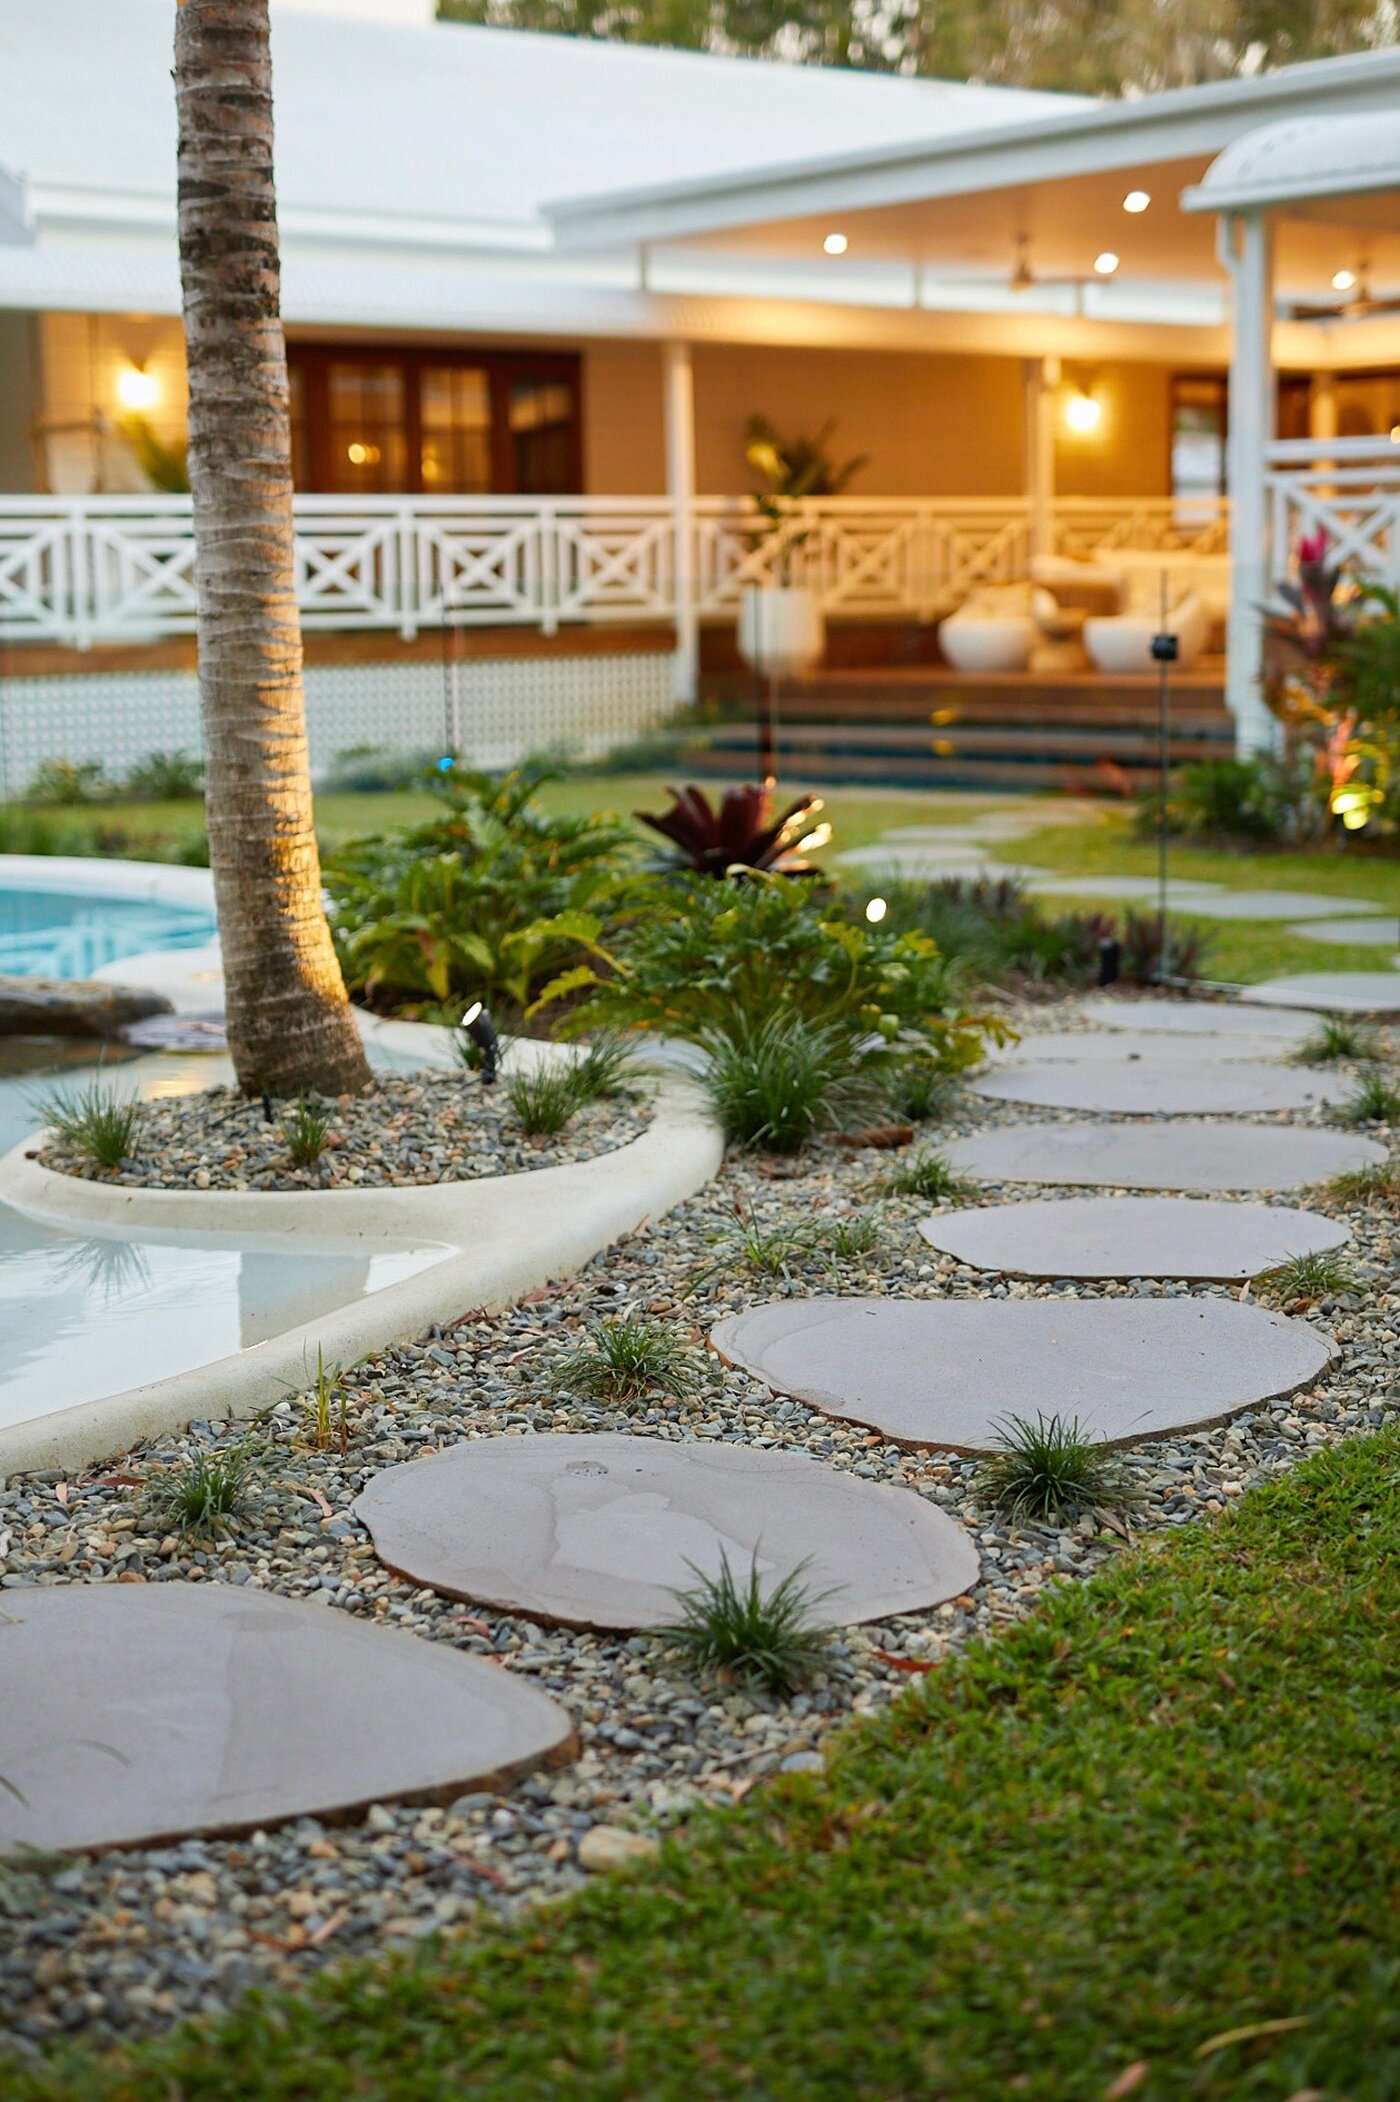 Eco Steppers & Landscaping next to a pool